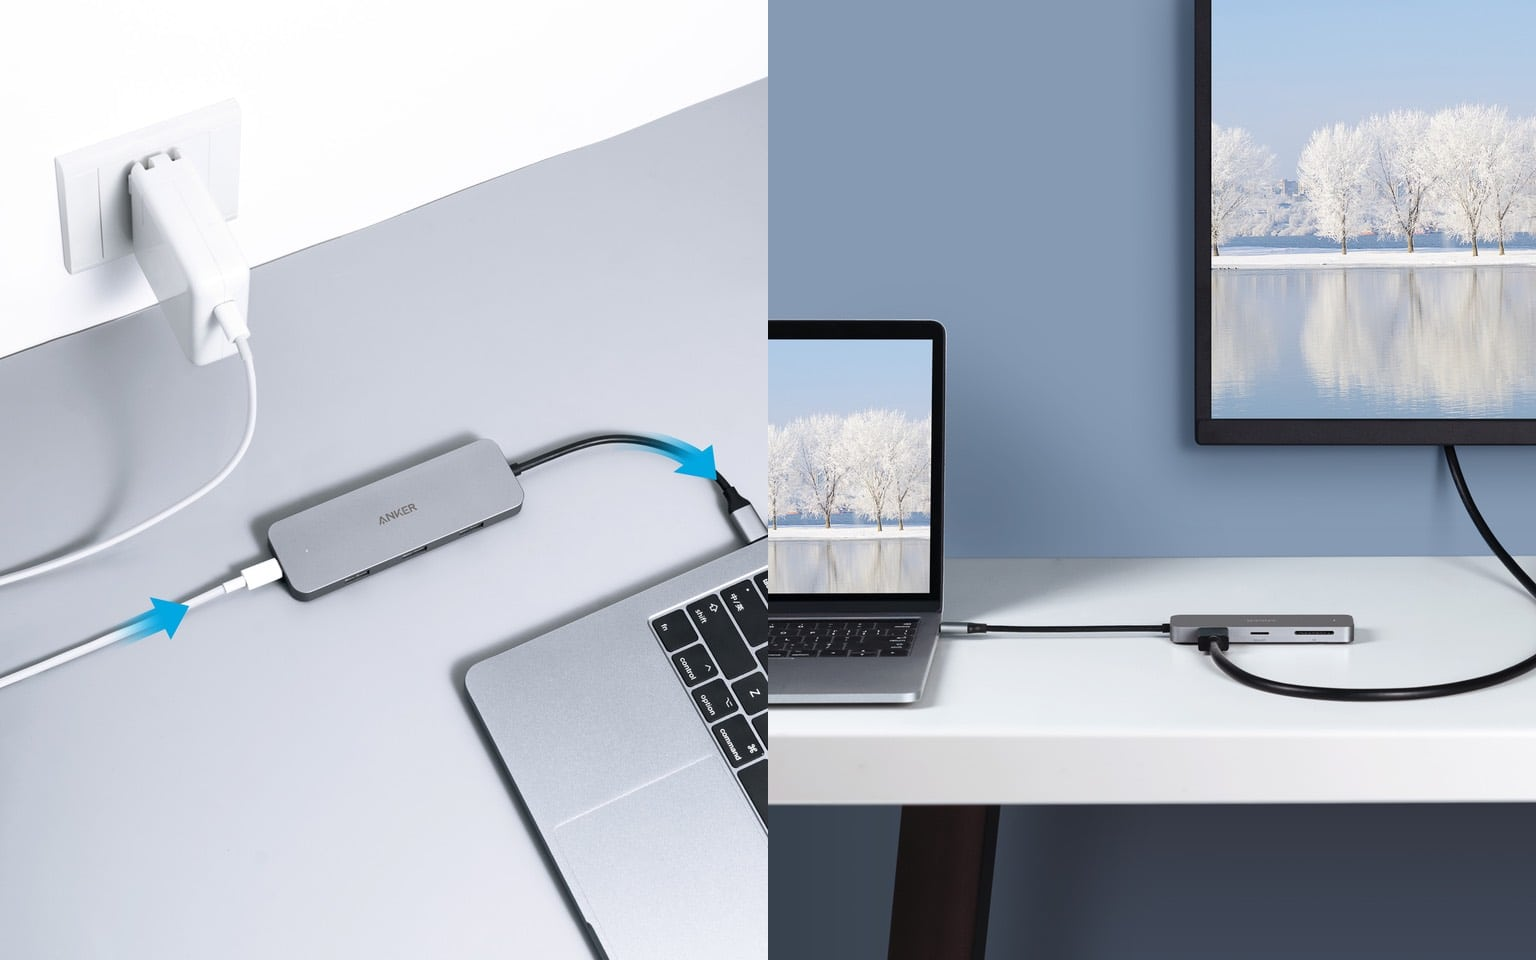 Anker's 7-in-1 USB-C hub even connects an HDMI screen.